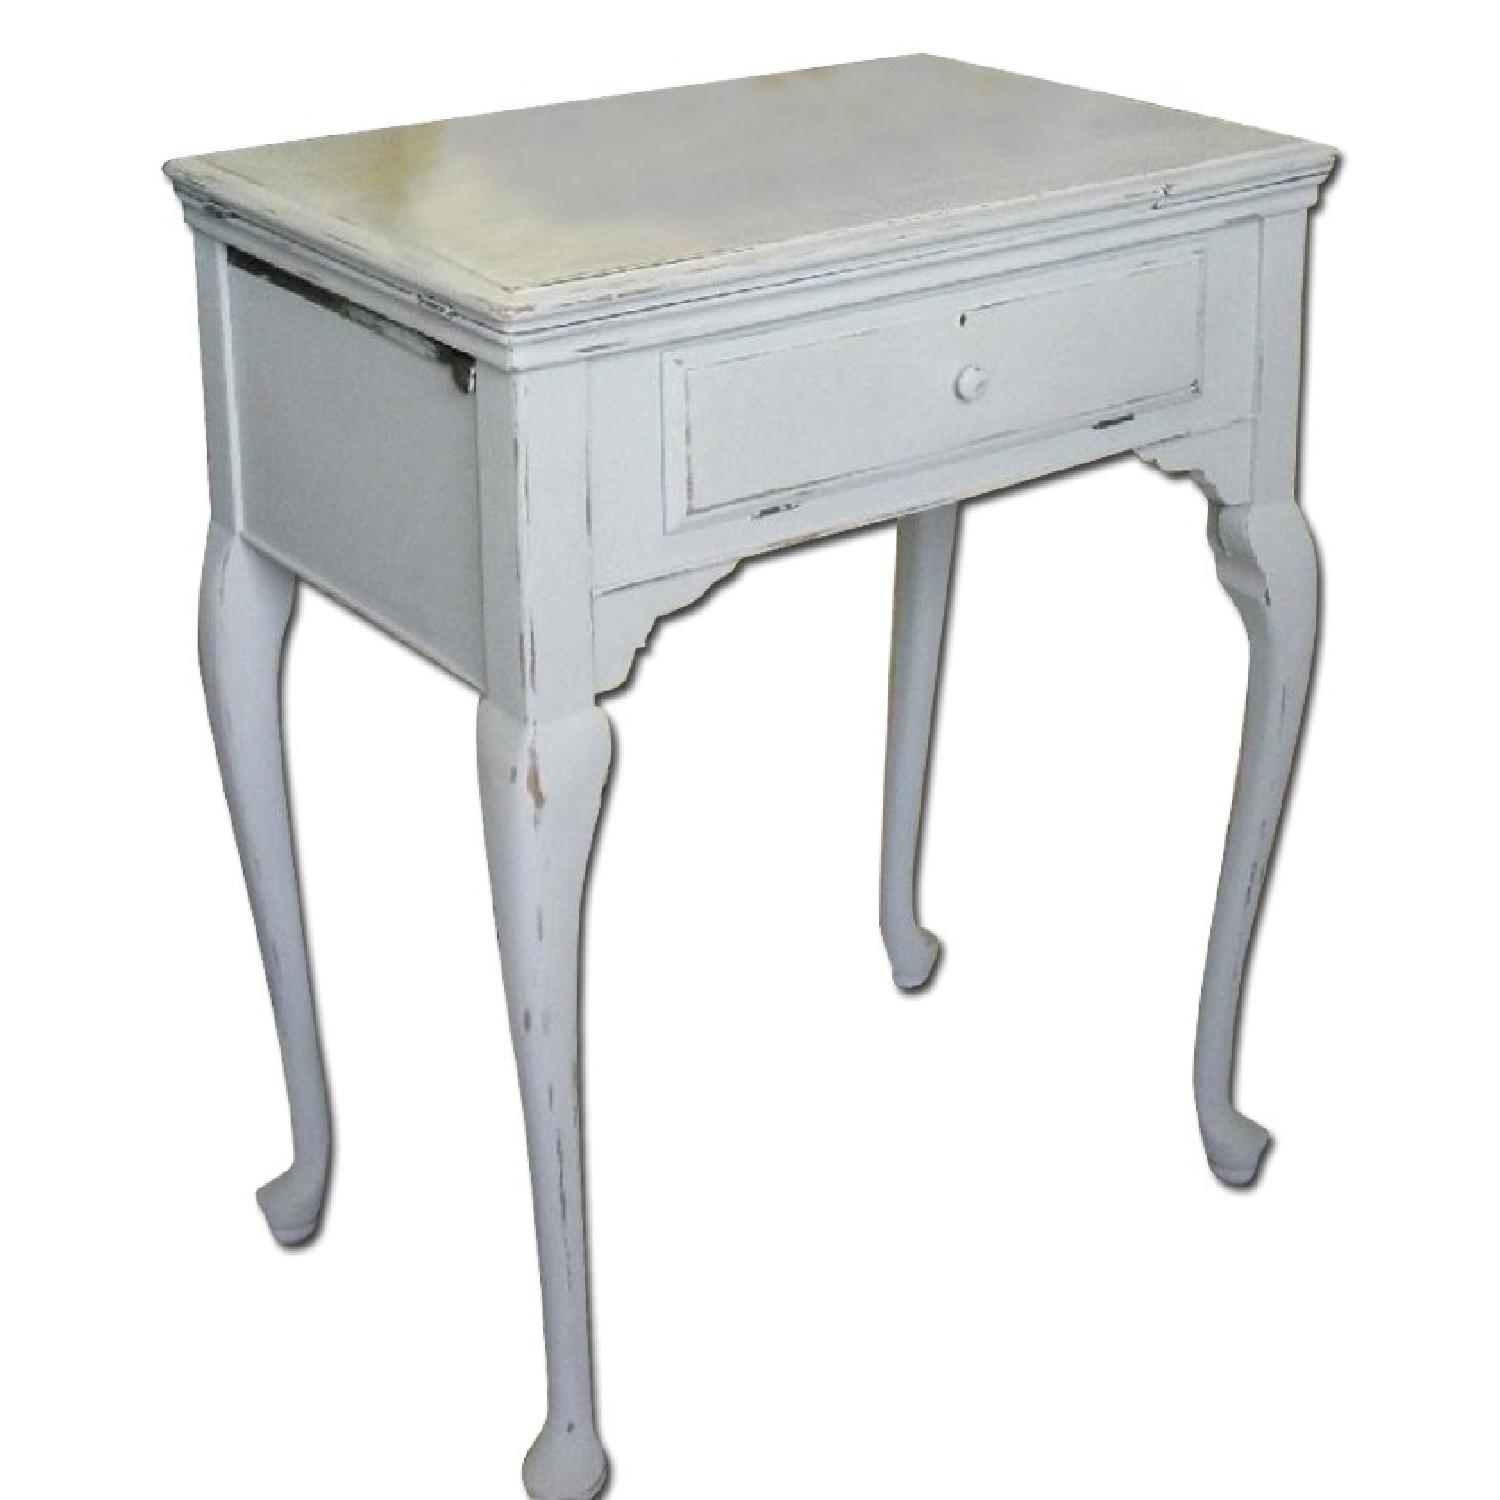 Sewing Machine Table - image-0